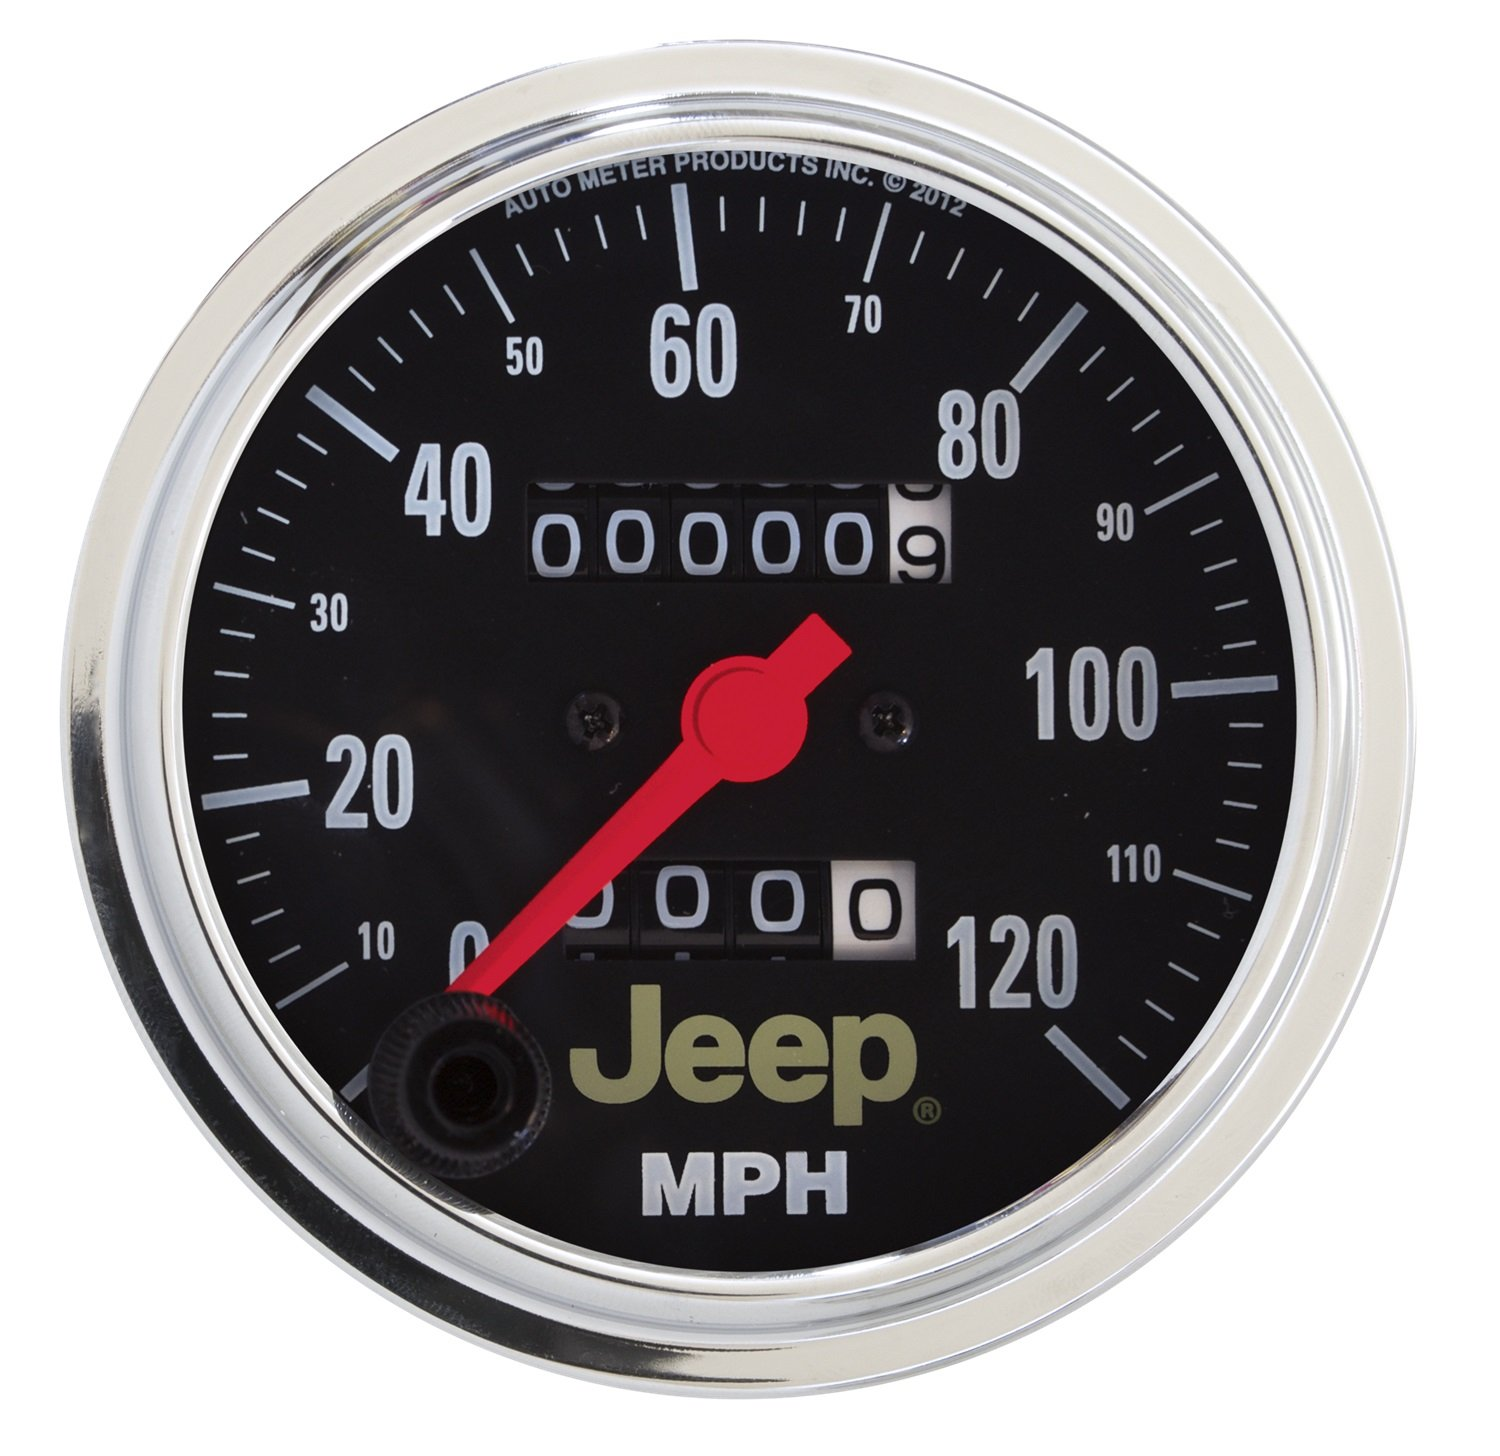 Auto Meter 880245 Mechanical Speedometer for Jeep